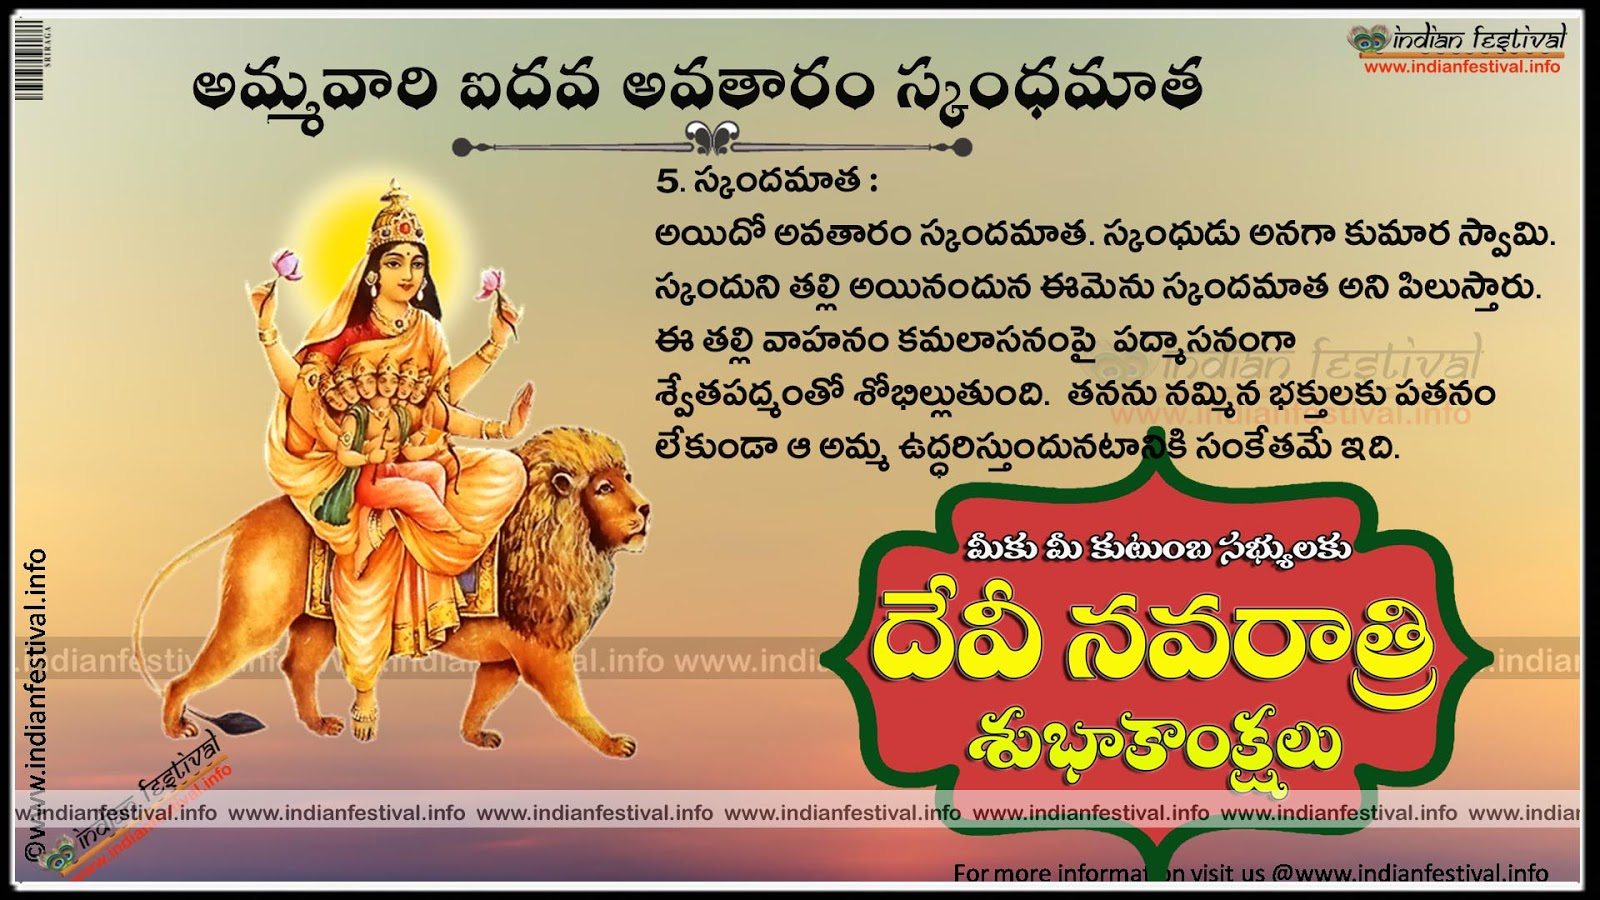 Vijayadashami navaratri 5th day skantha mata telugu quotes greetings wallpapers(adsbygoogle = window.adsbygoogle || []).push({});